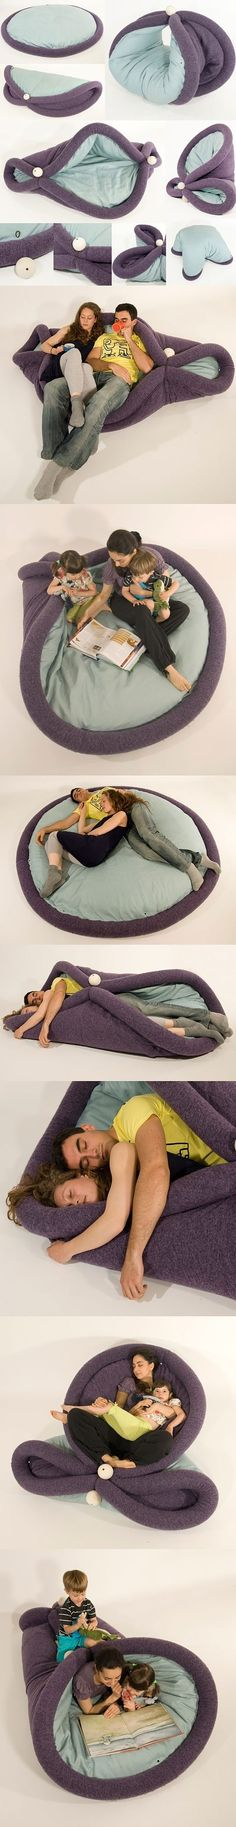 what the heck is this?! i want one!!!!!!!!!!!!